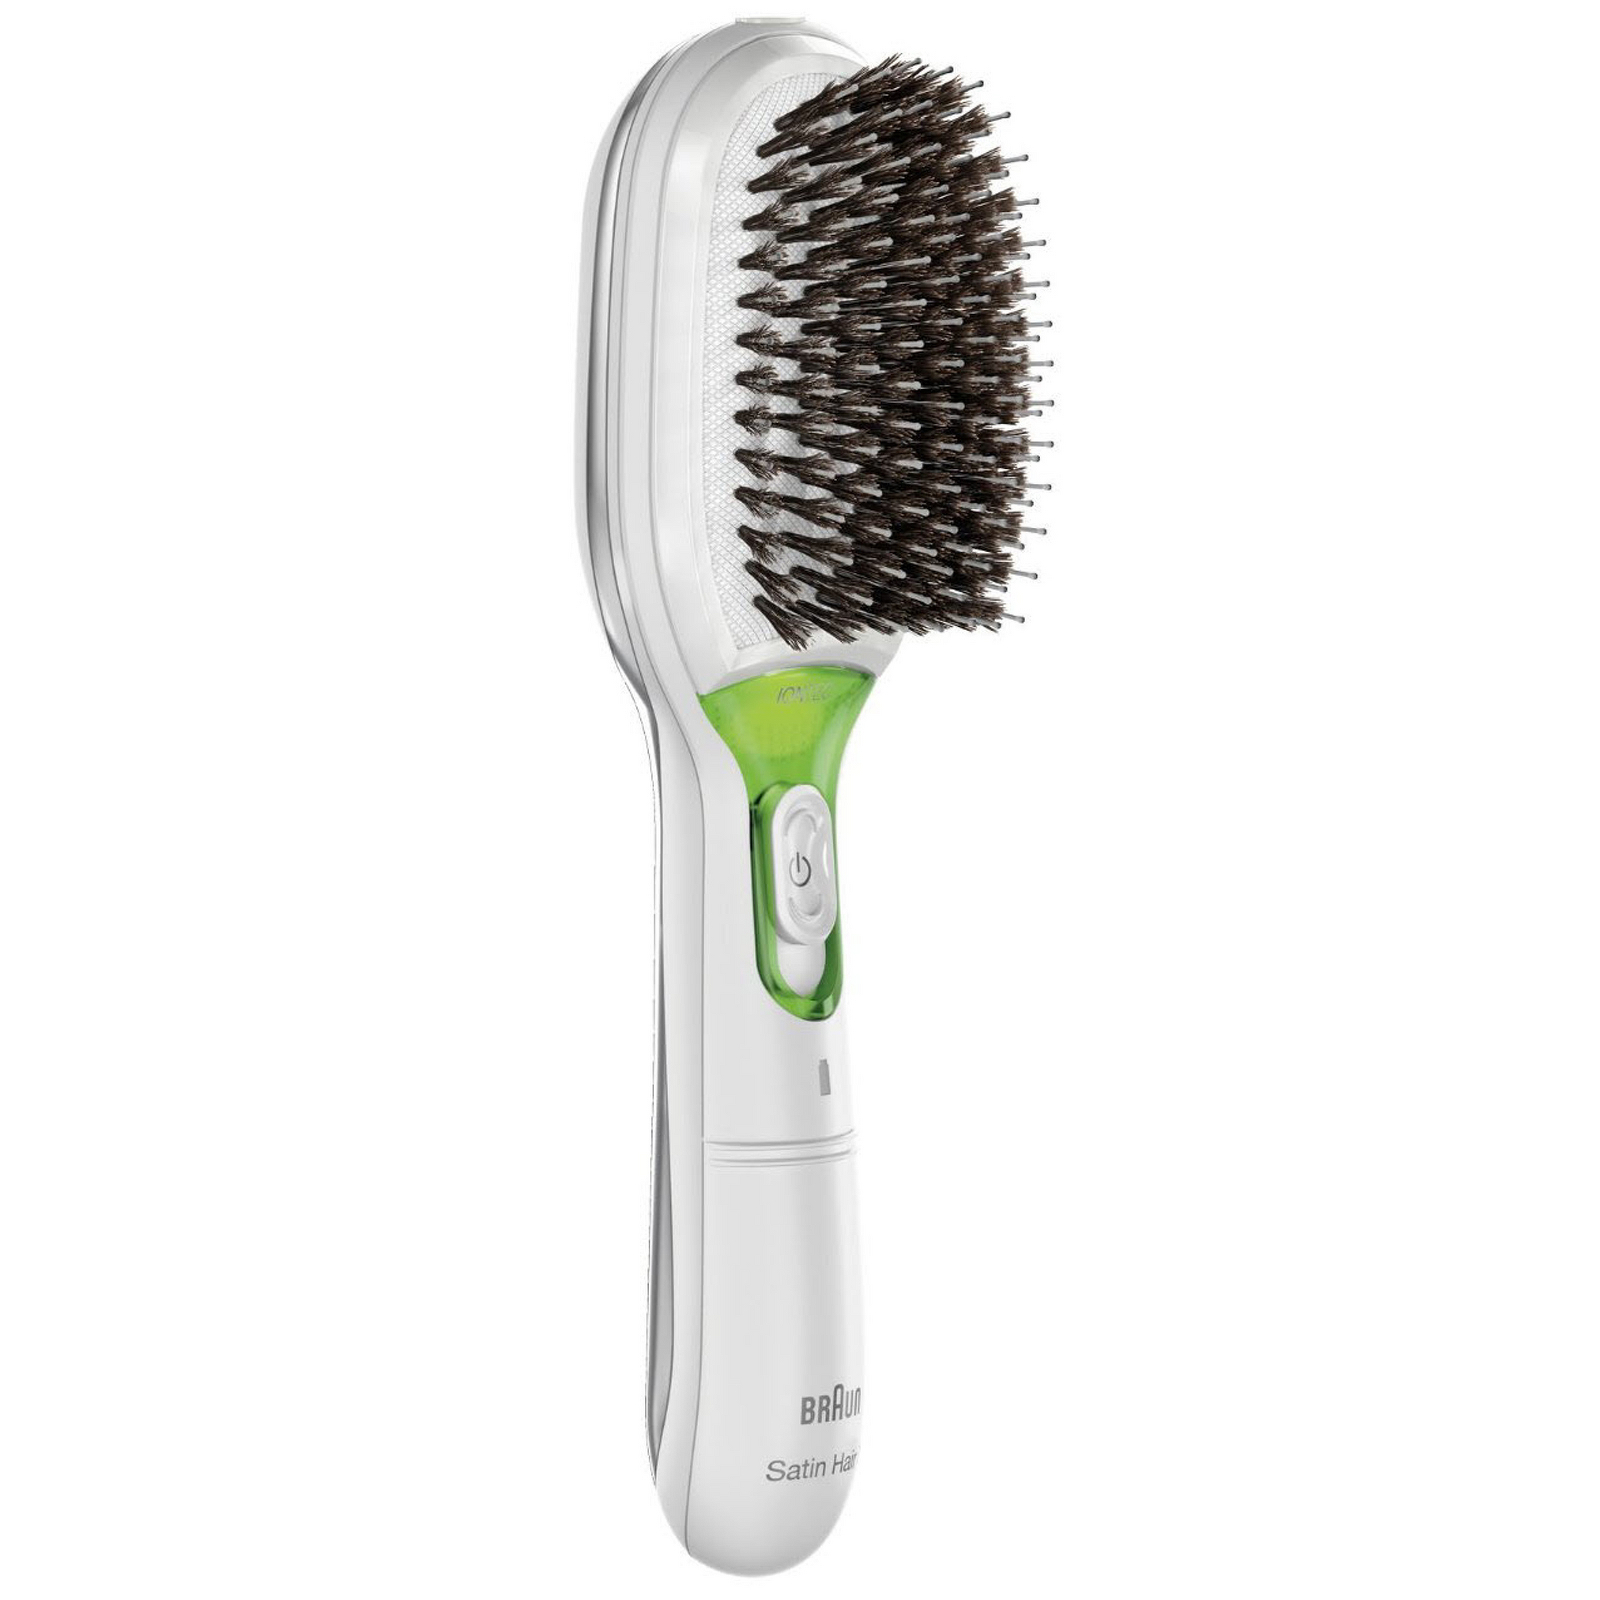 Braun Satin Hair 7 BR750 Brush with IONTEC Technology and Natural Bristle